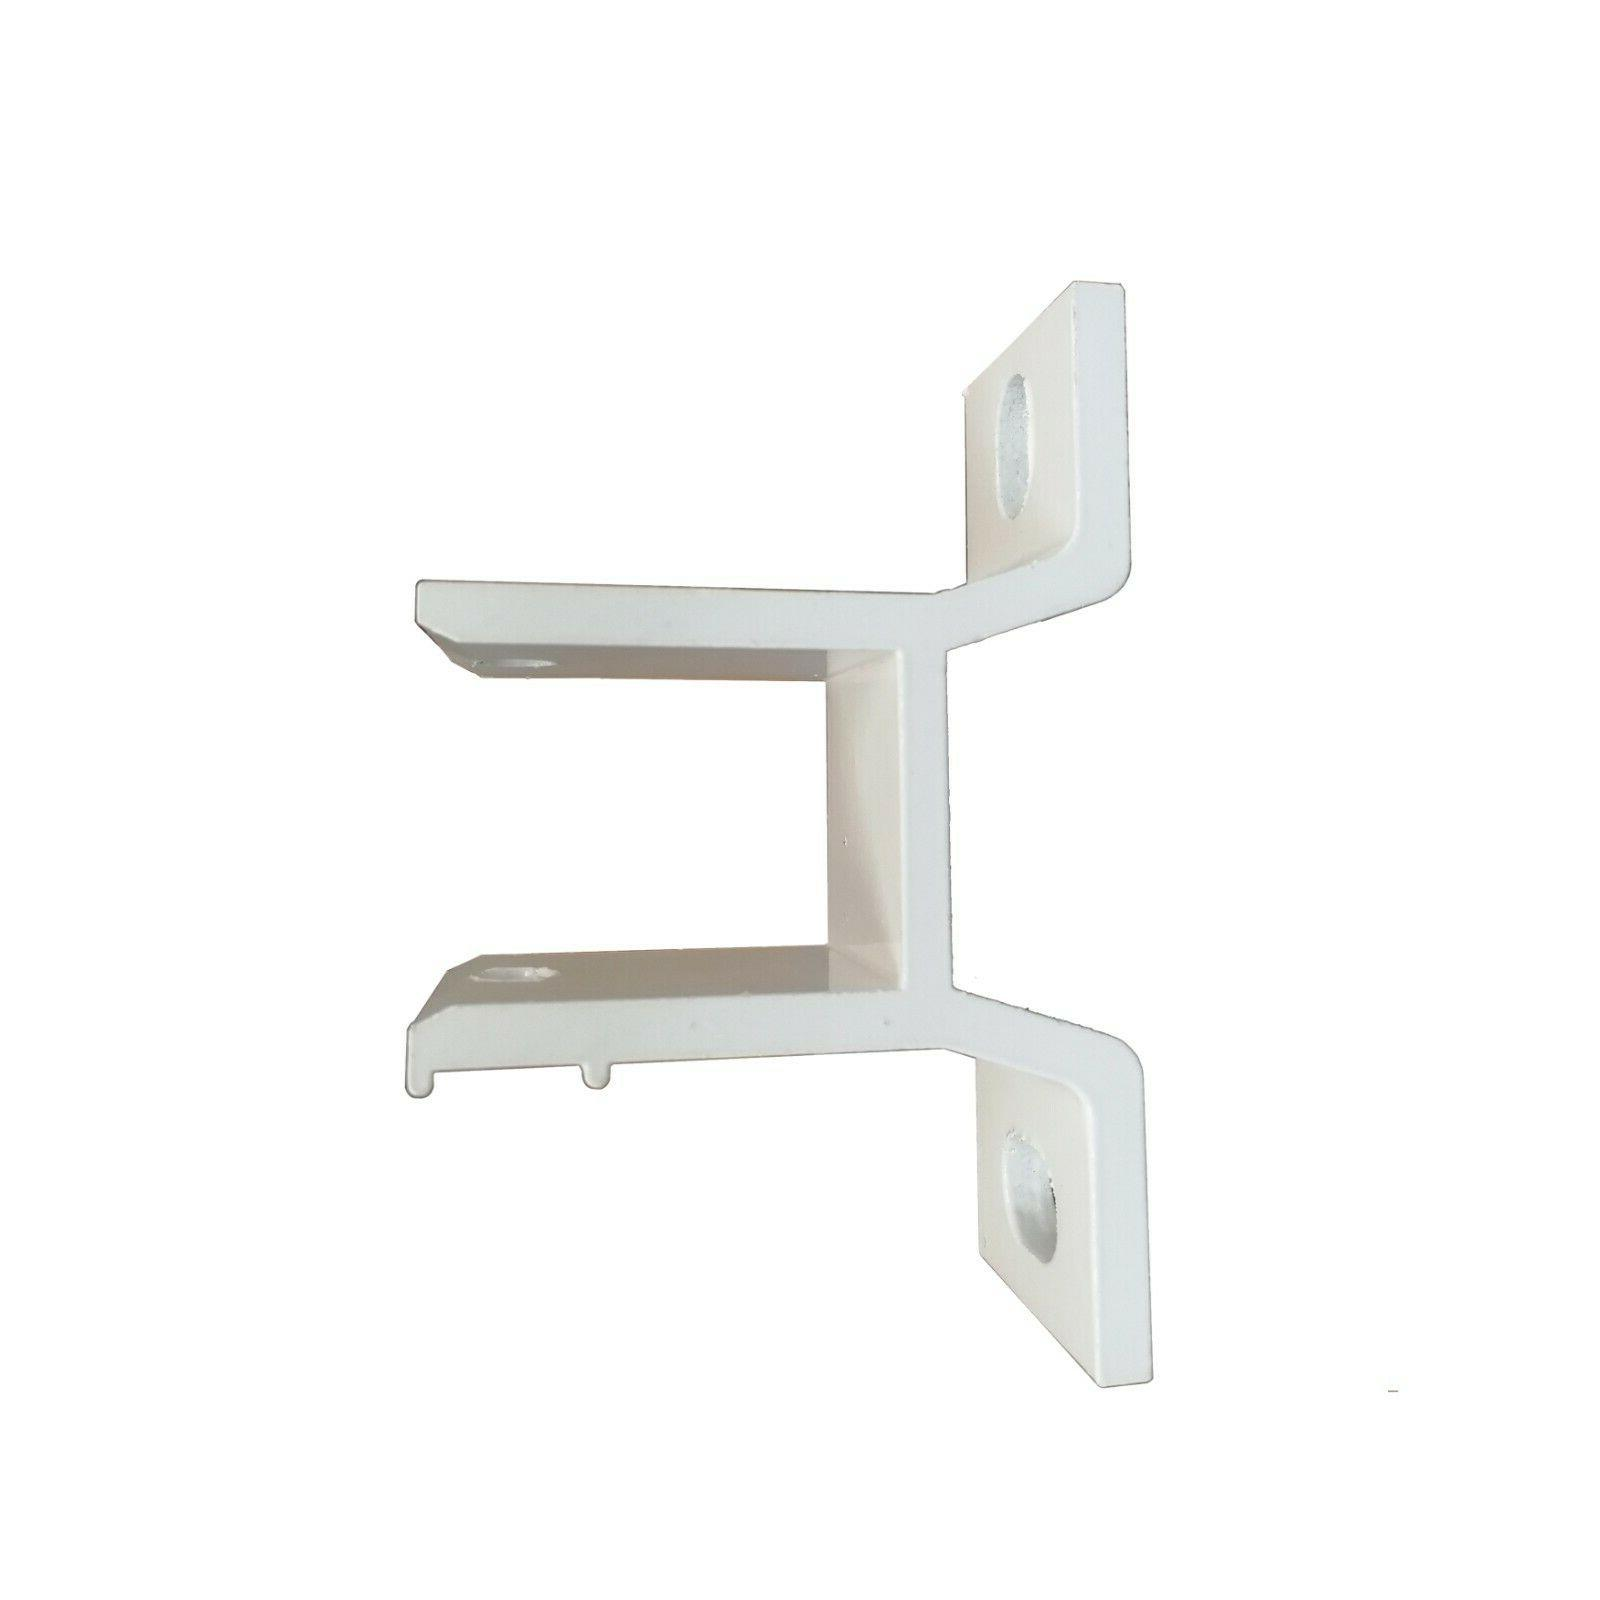 steel wall mounting bracket for retractable awnings